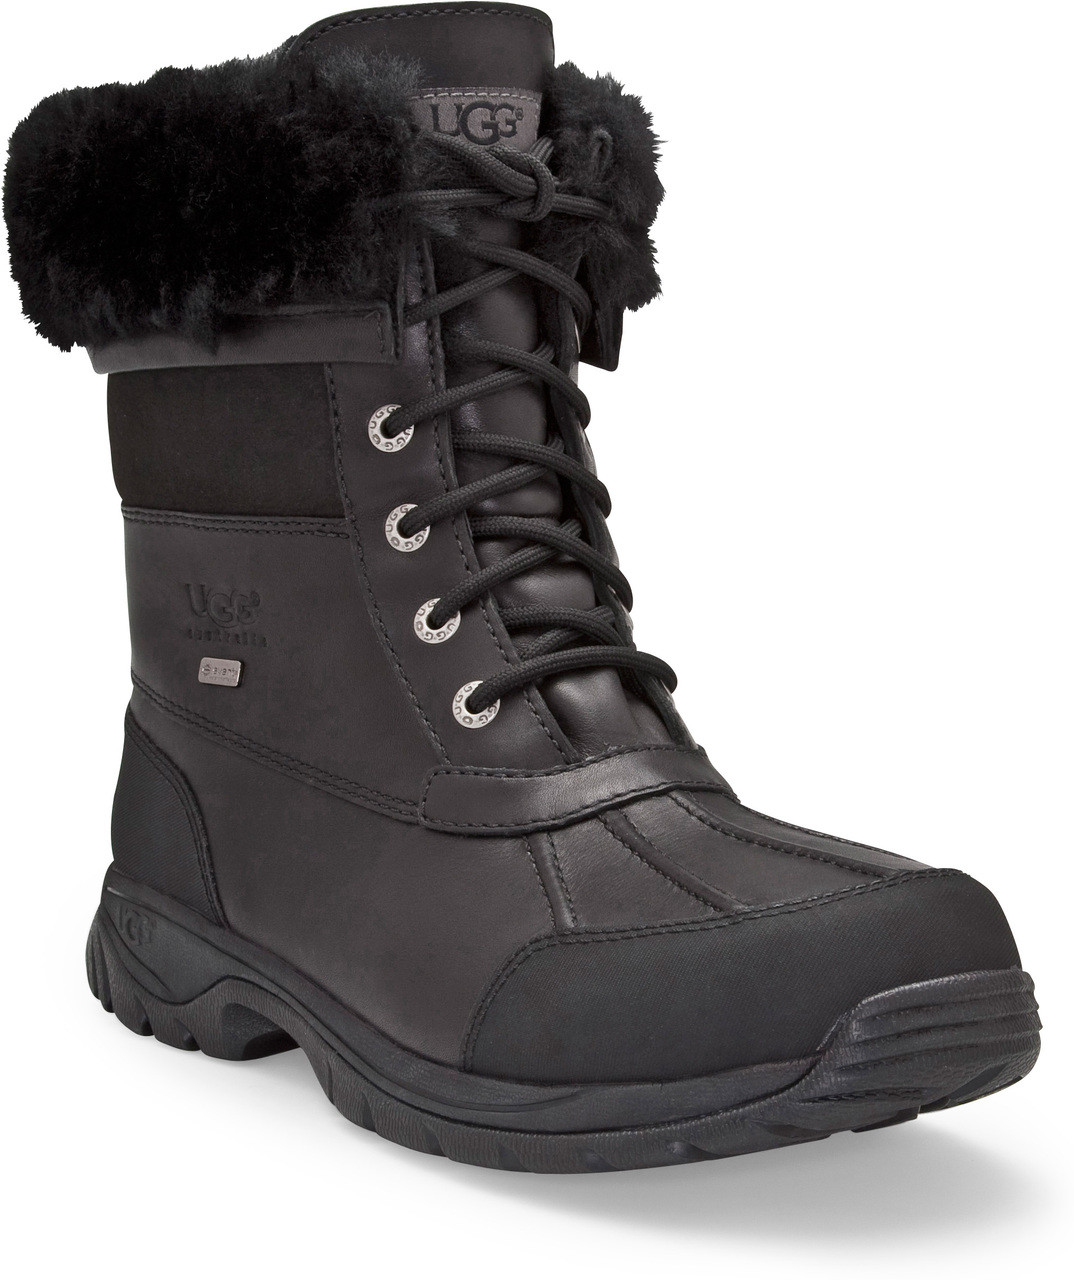 496dea89ffc UGG Men's Butte